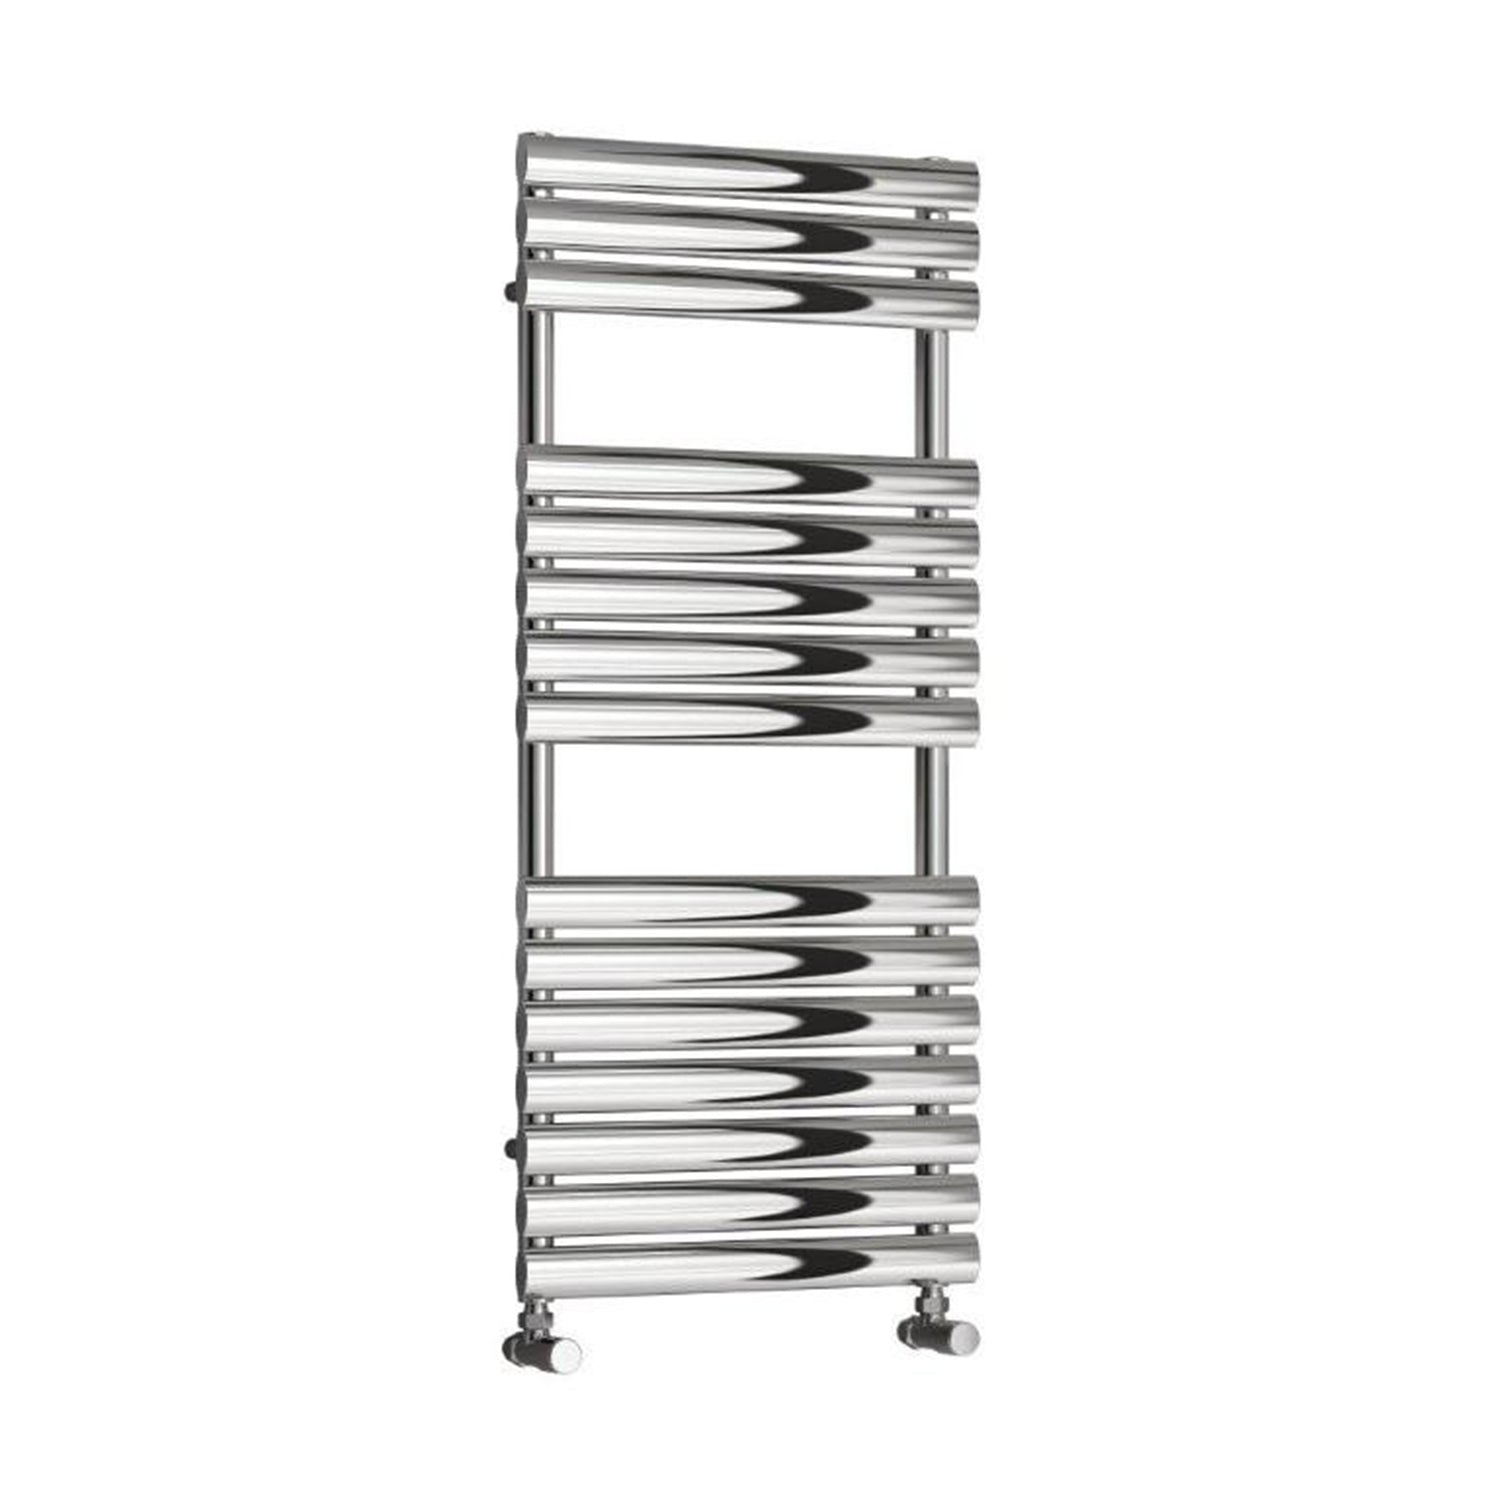 Helin Designer Stainless Steel Towel Radiator All Sizes